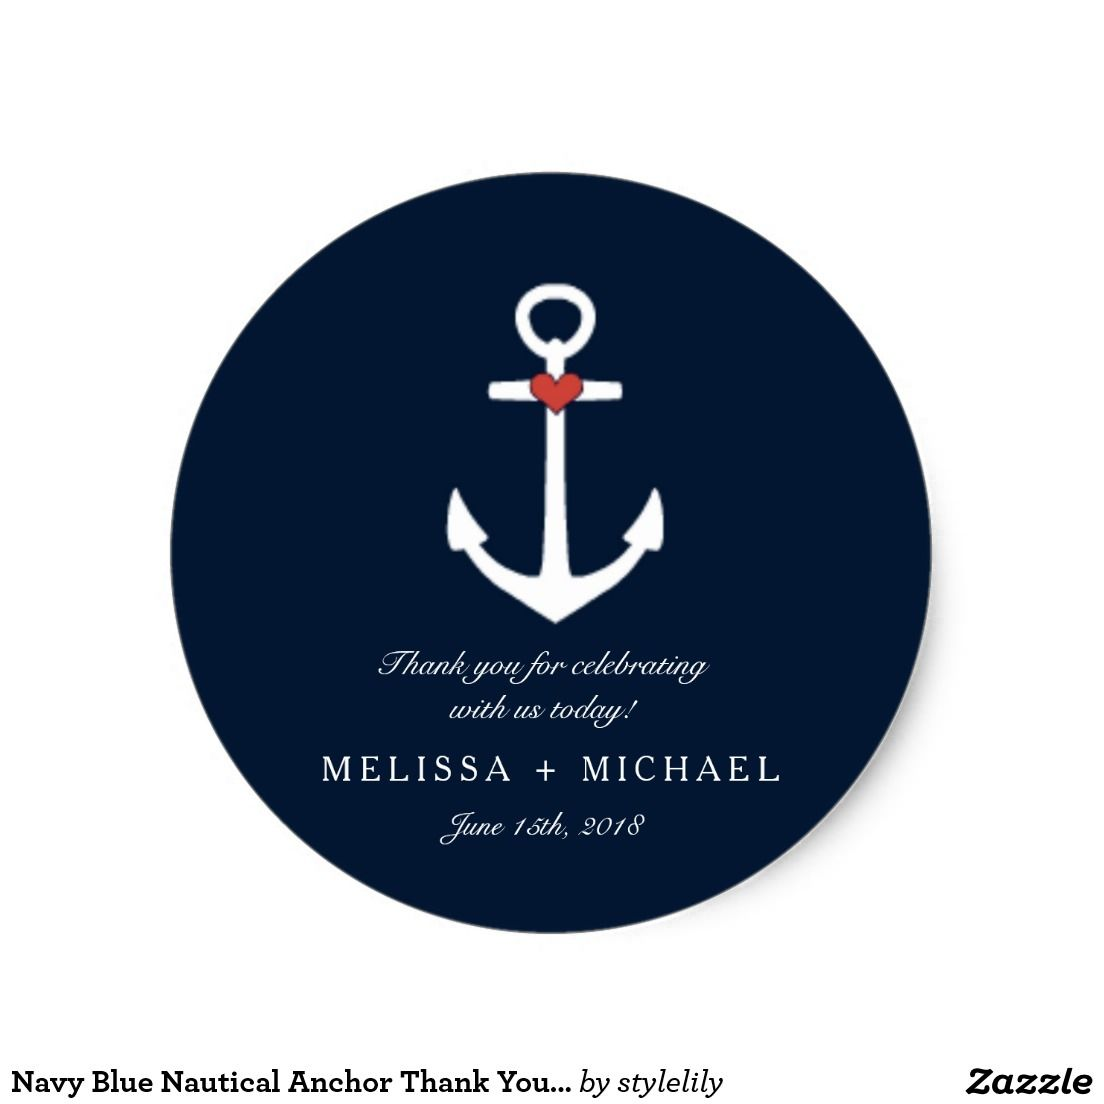 Navy Blue Nautical Anchor Thank You Stickers Sold Thank You To The